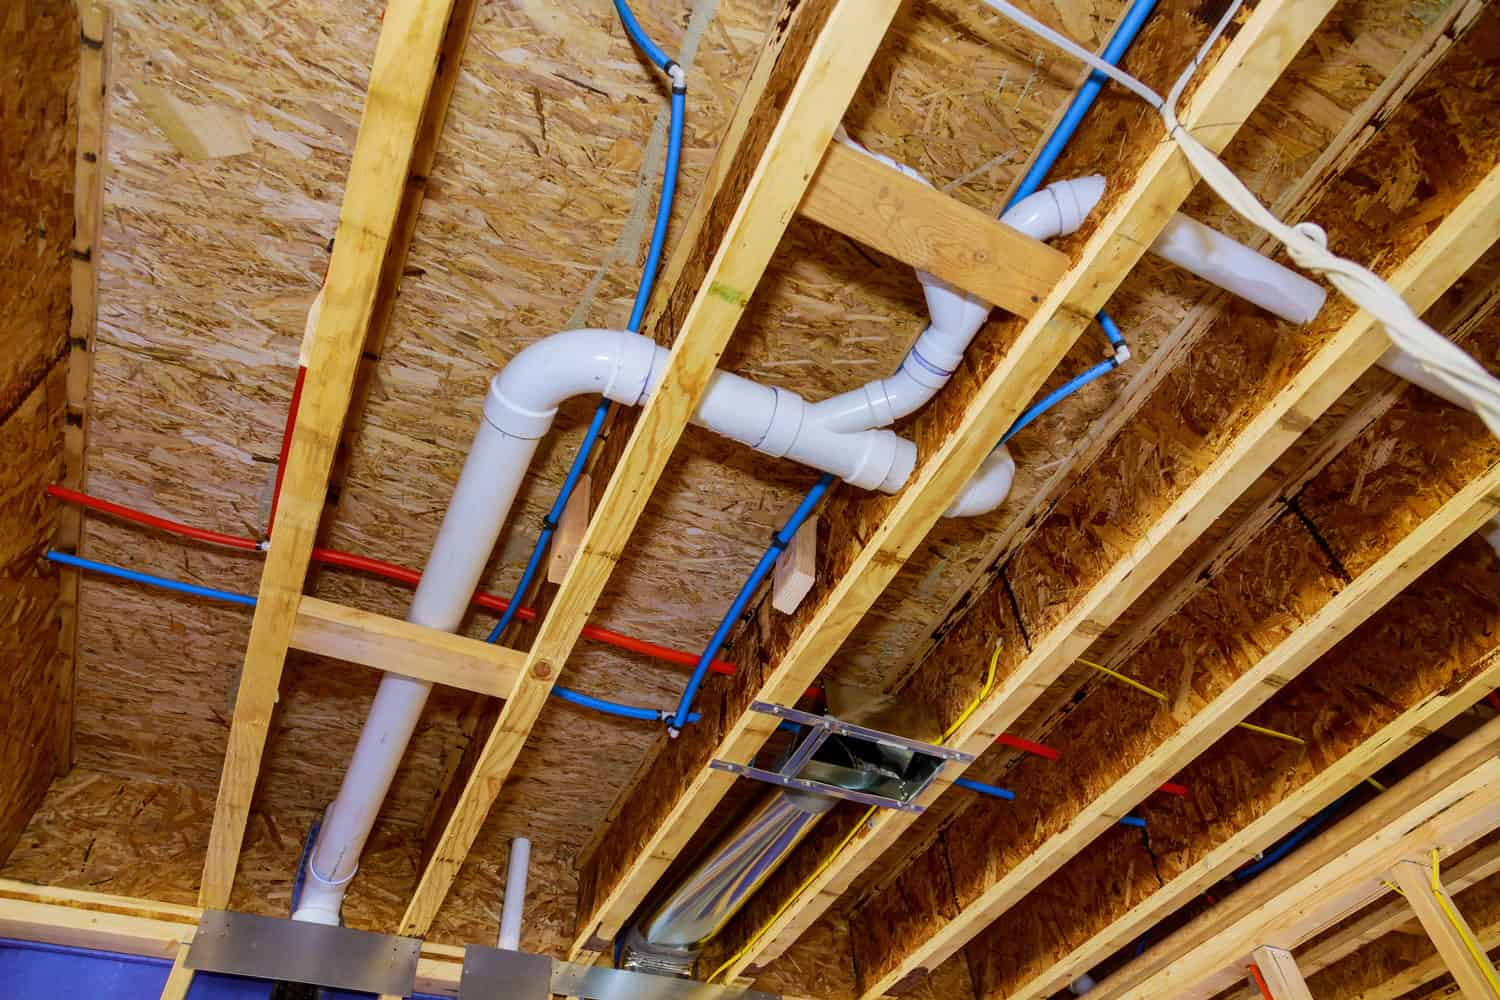 Home construction with hot red and cold blue pex pipe layout in pipes and exposed beams